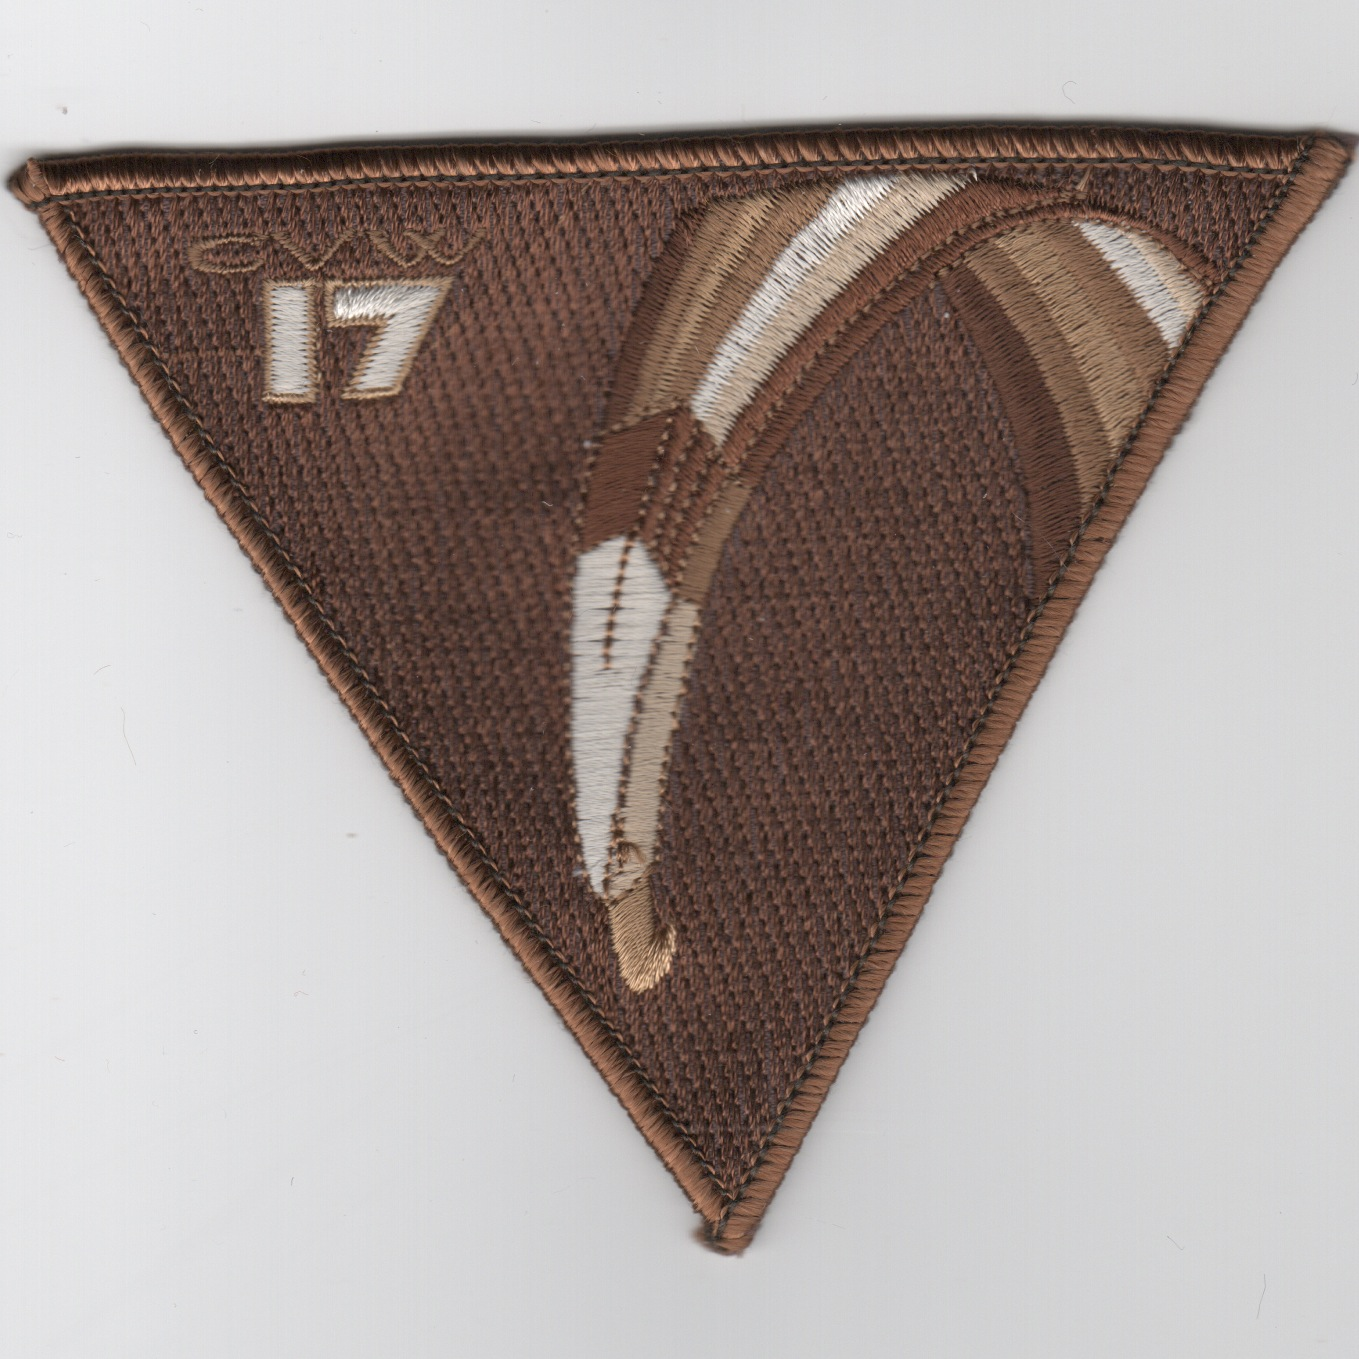 CVW-17 Patch (Des)